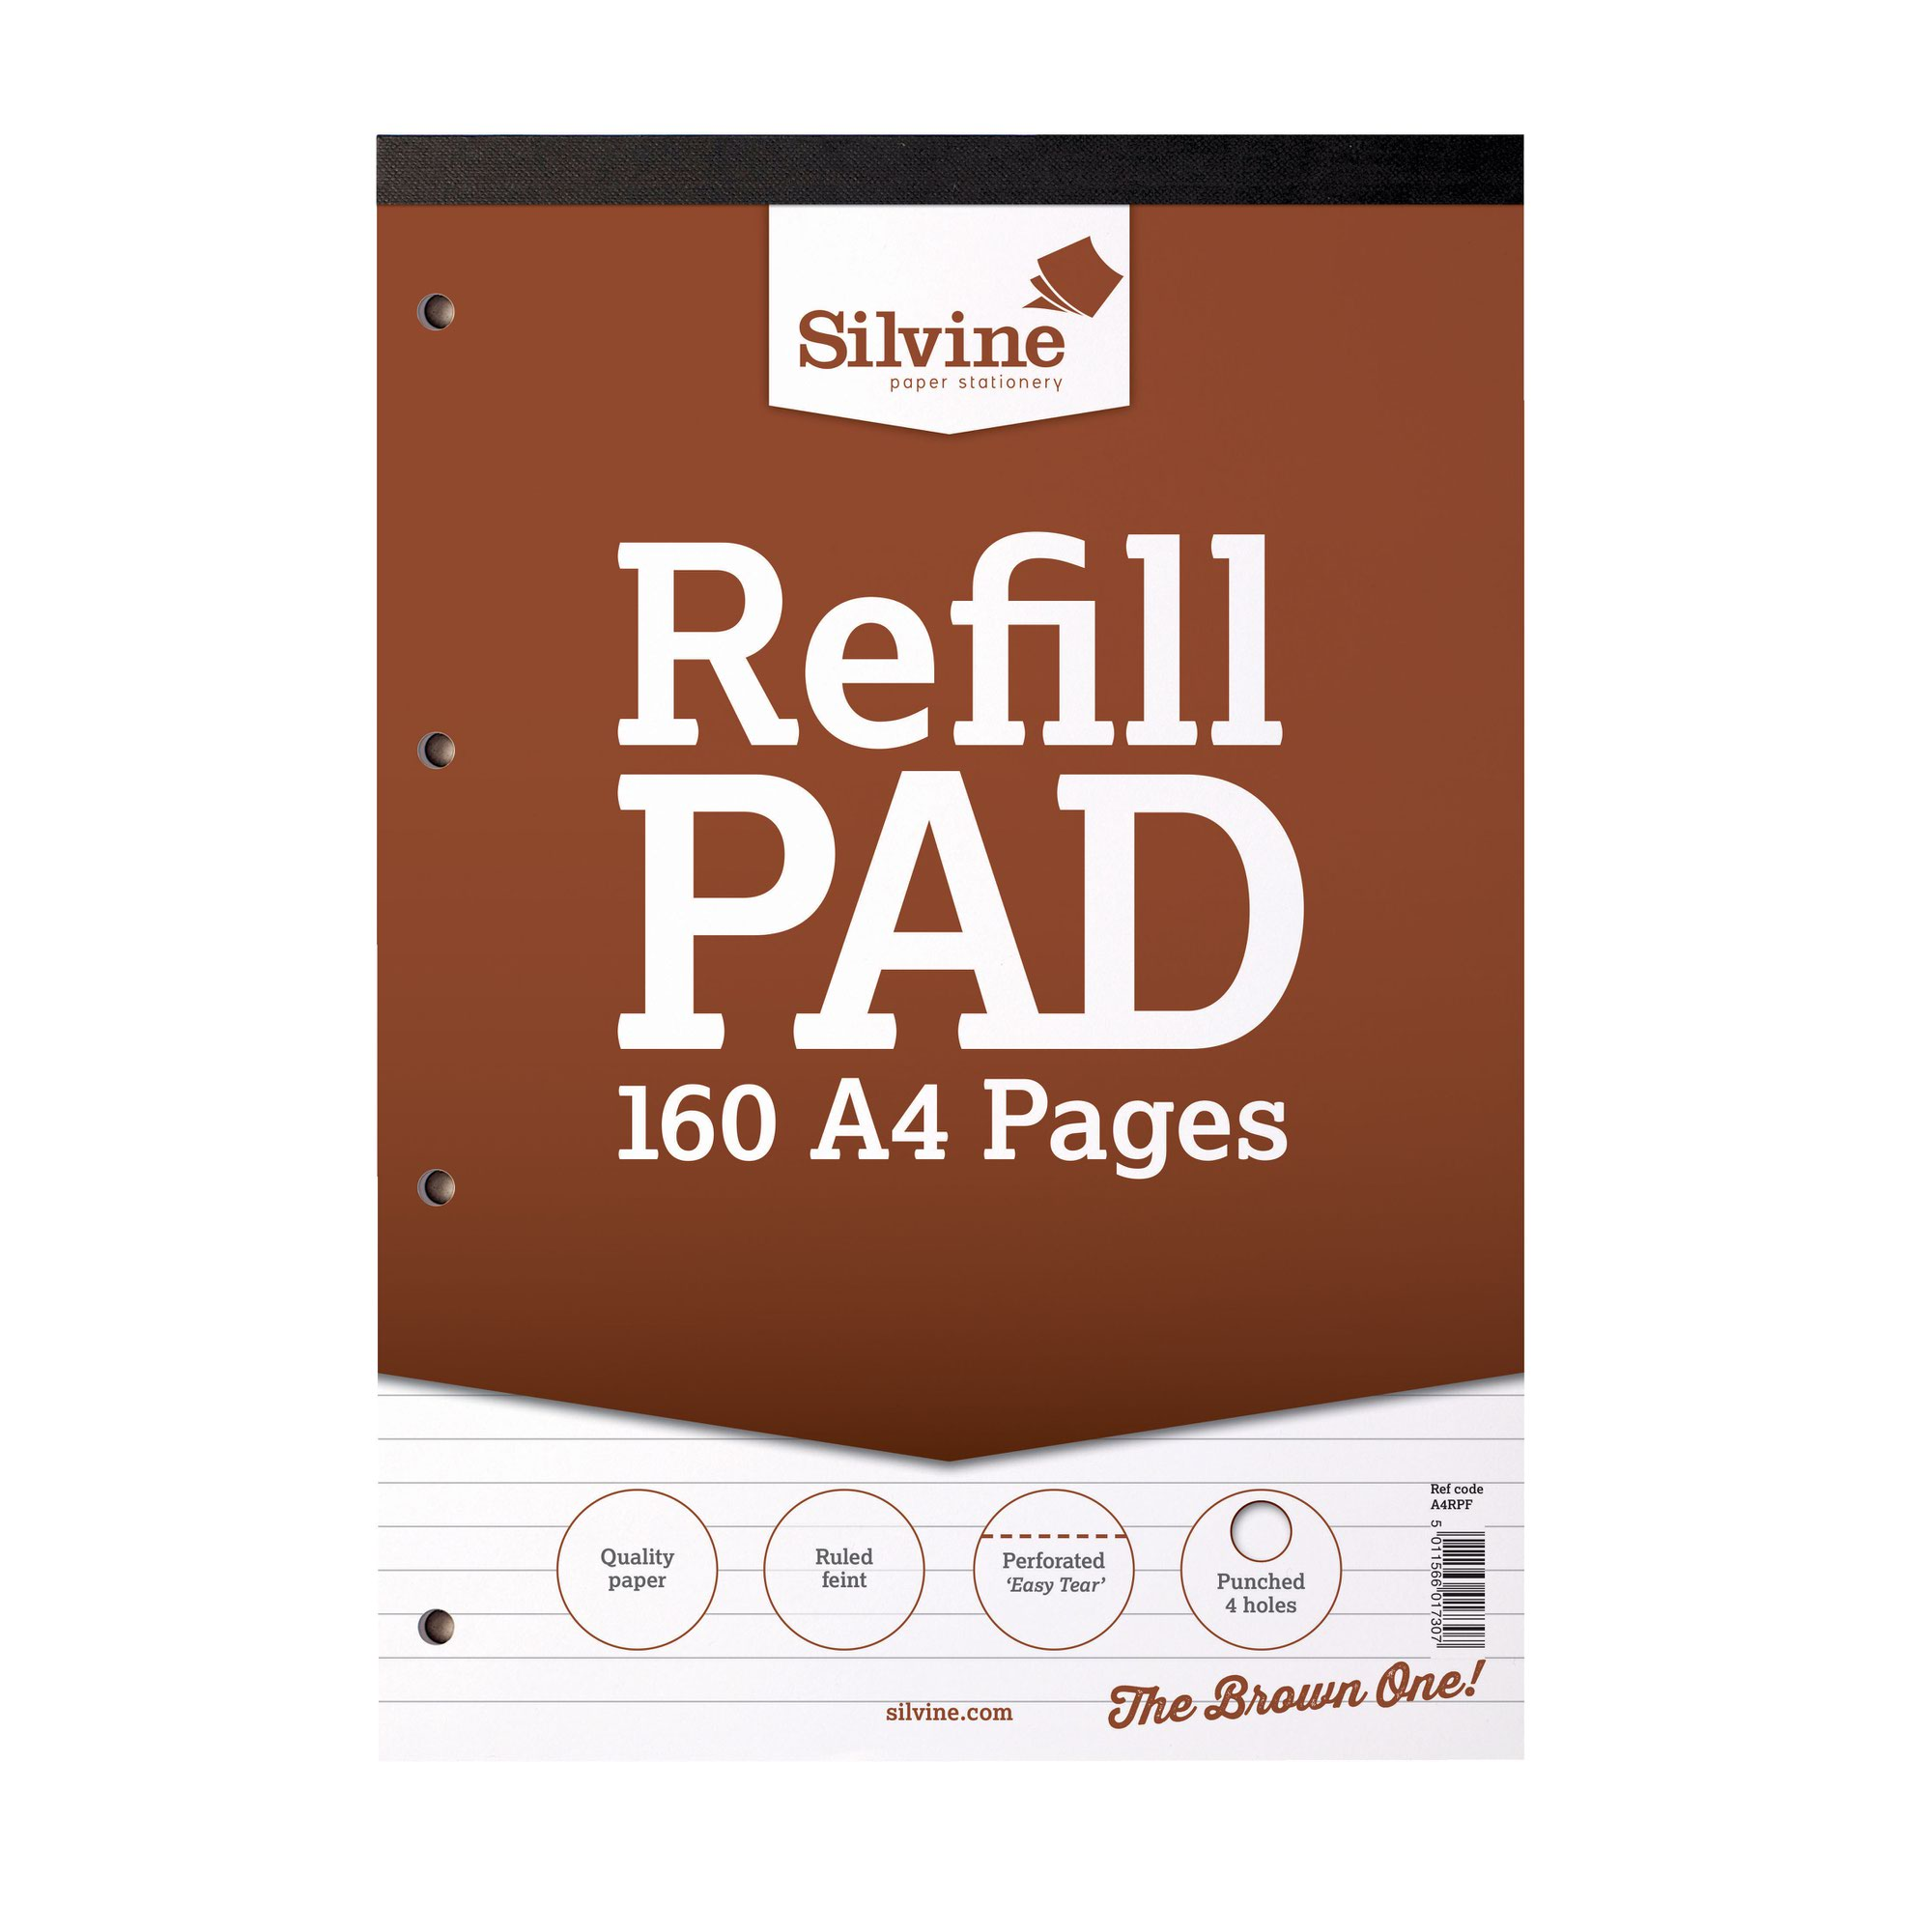 Silvine Refill Pad A4 Feint Ruled 75gsm 160pages A4RPF